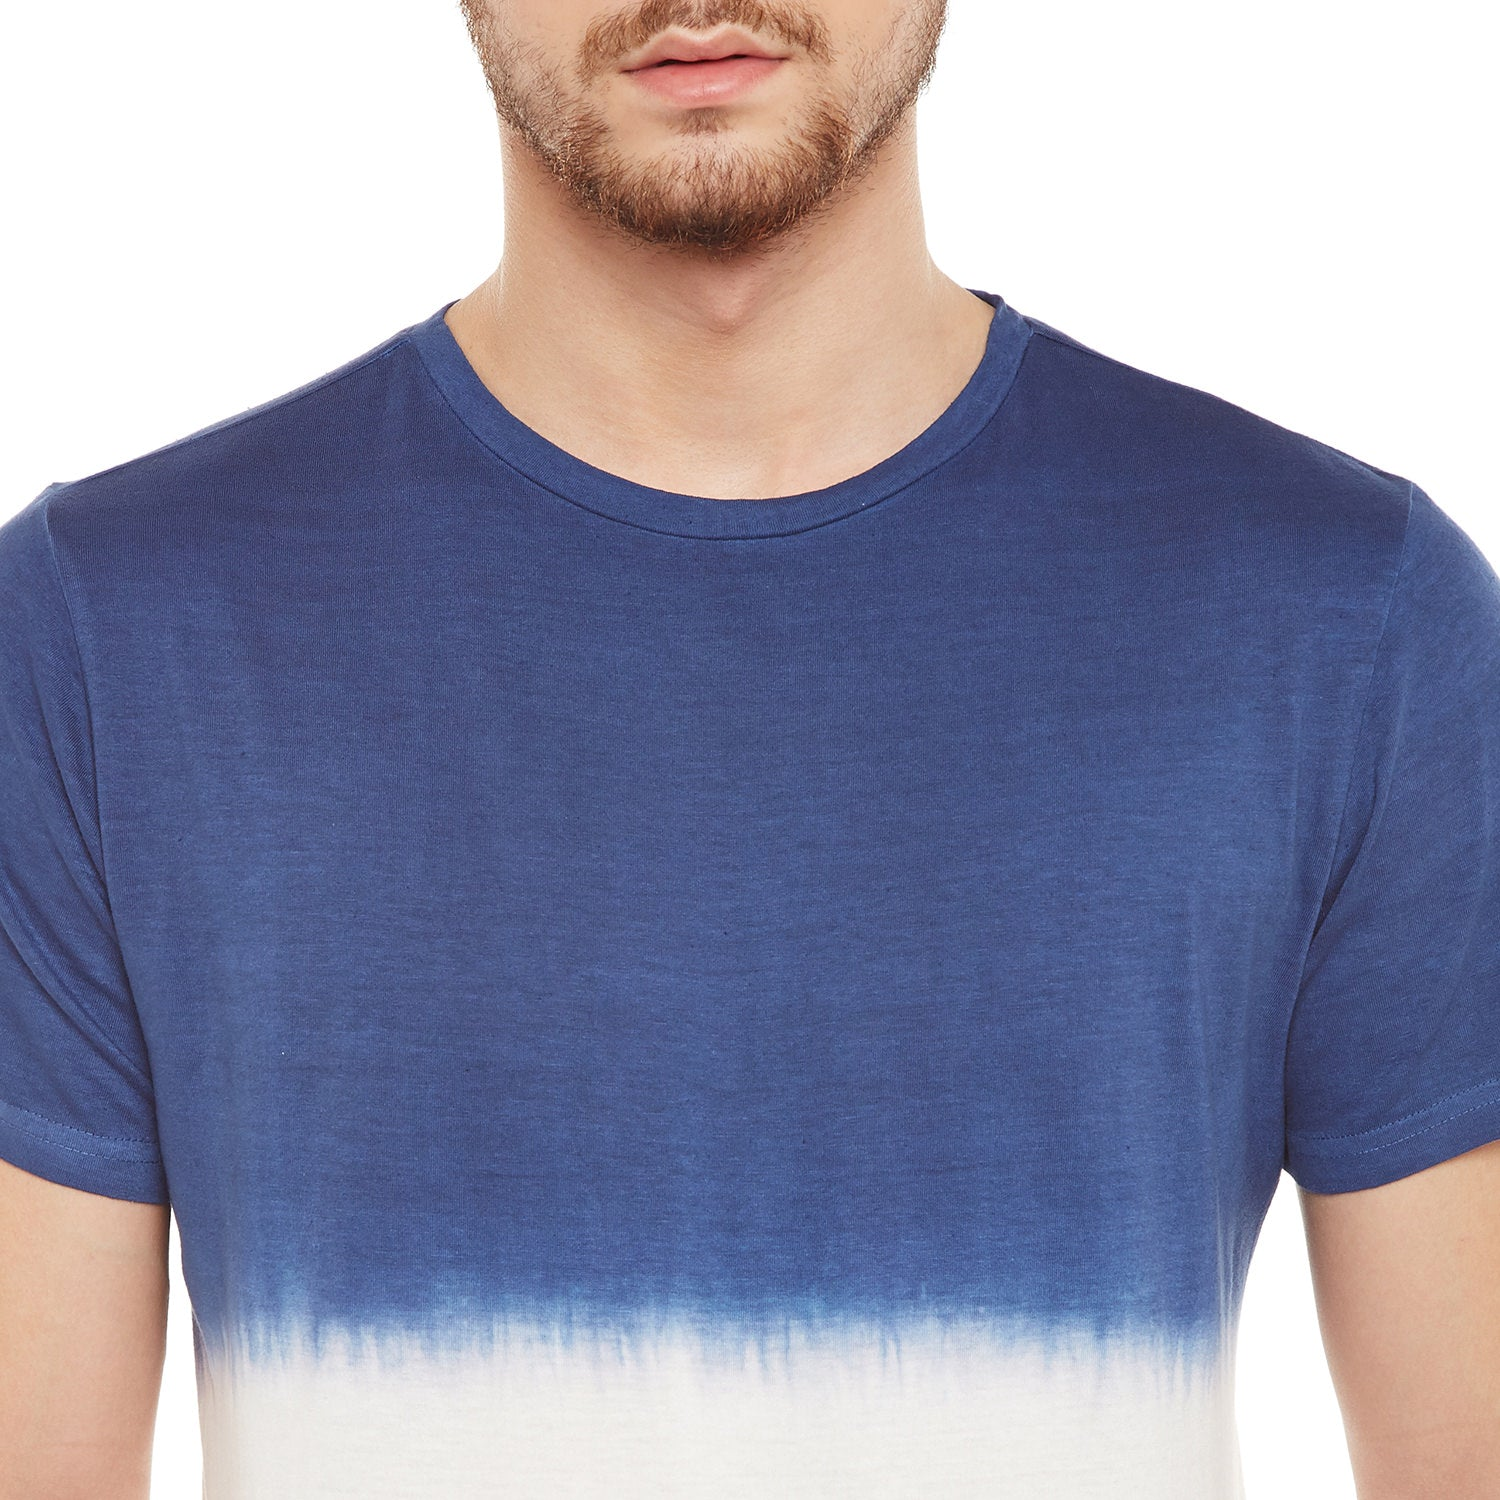 Atorse Mens Half Sleeves Navy/Multi T-Shirt With Ombre Effect